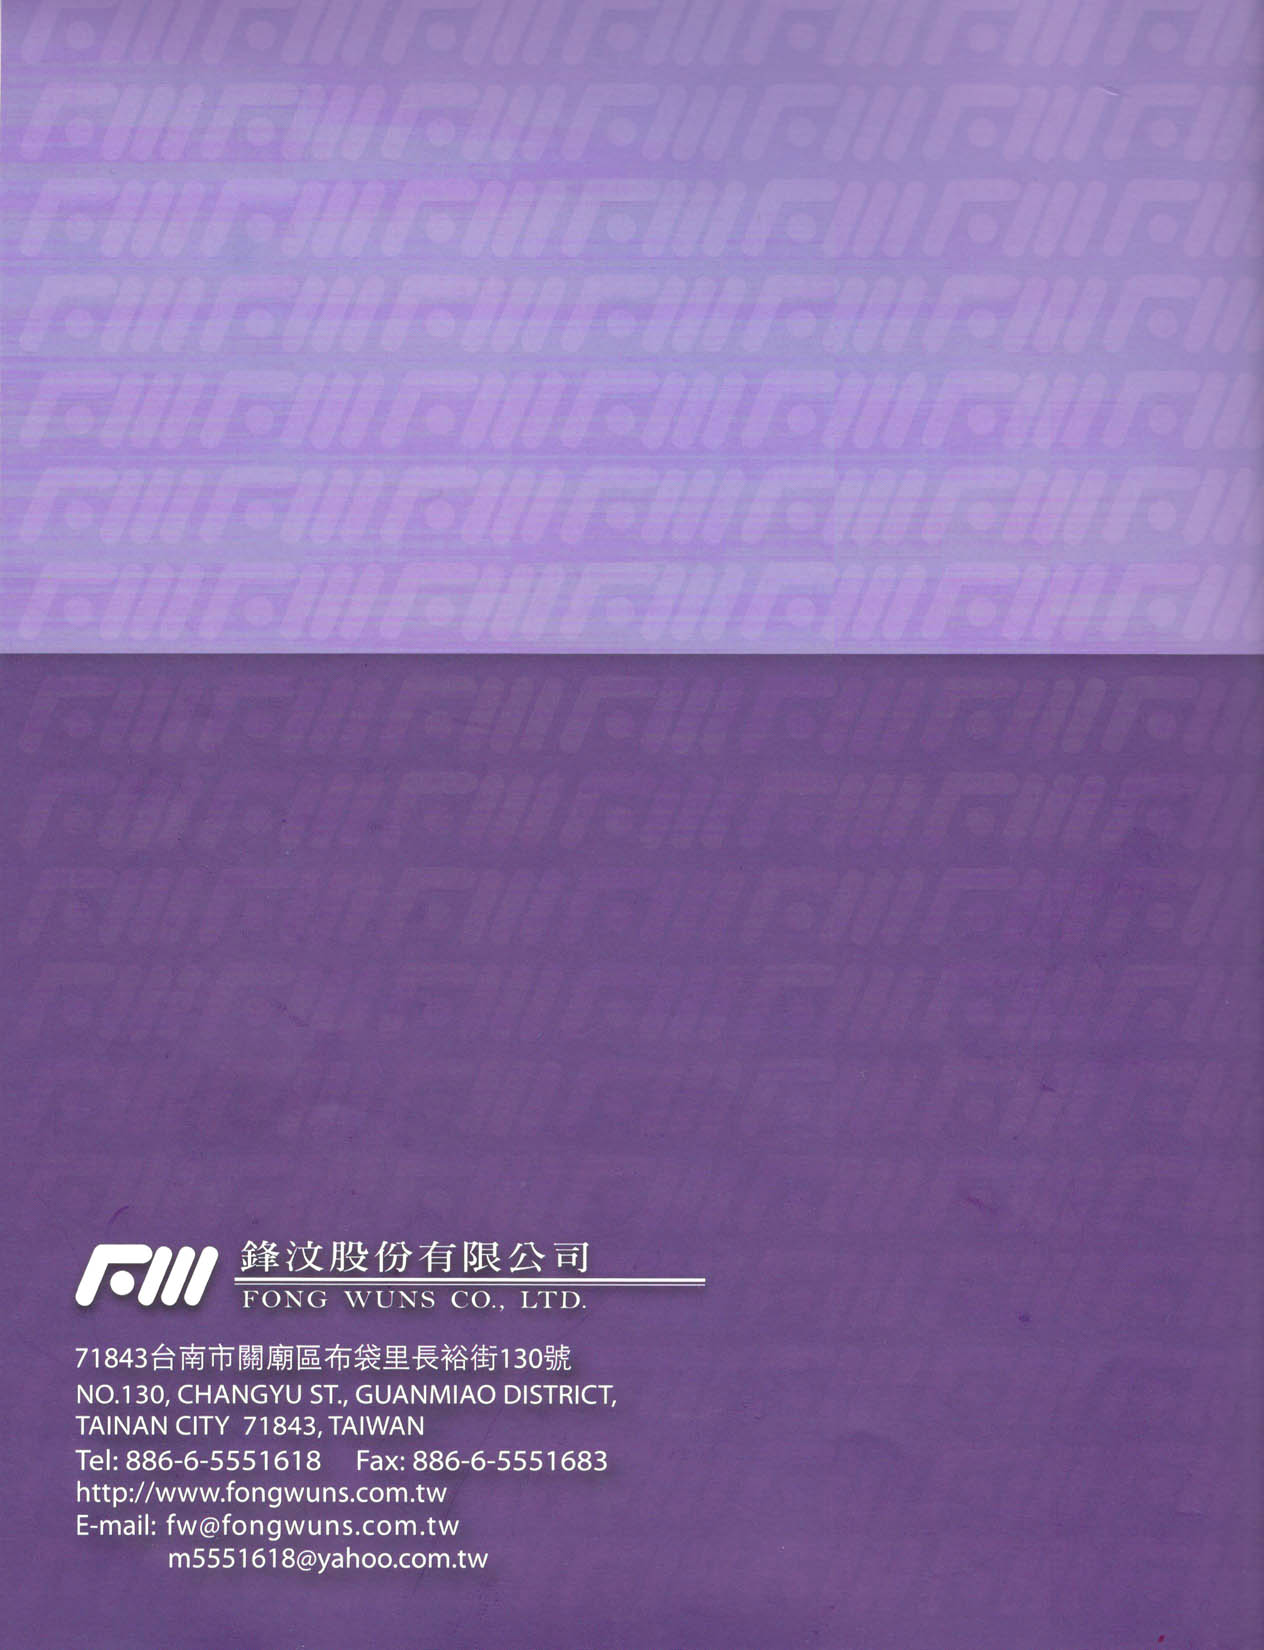 FONG WUNS CO., LTD. _Online Catalogues